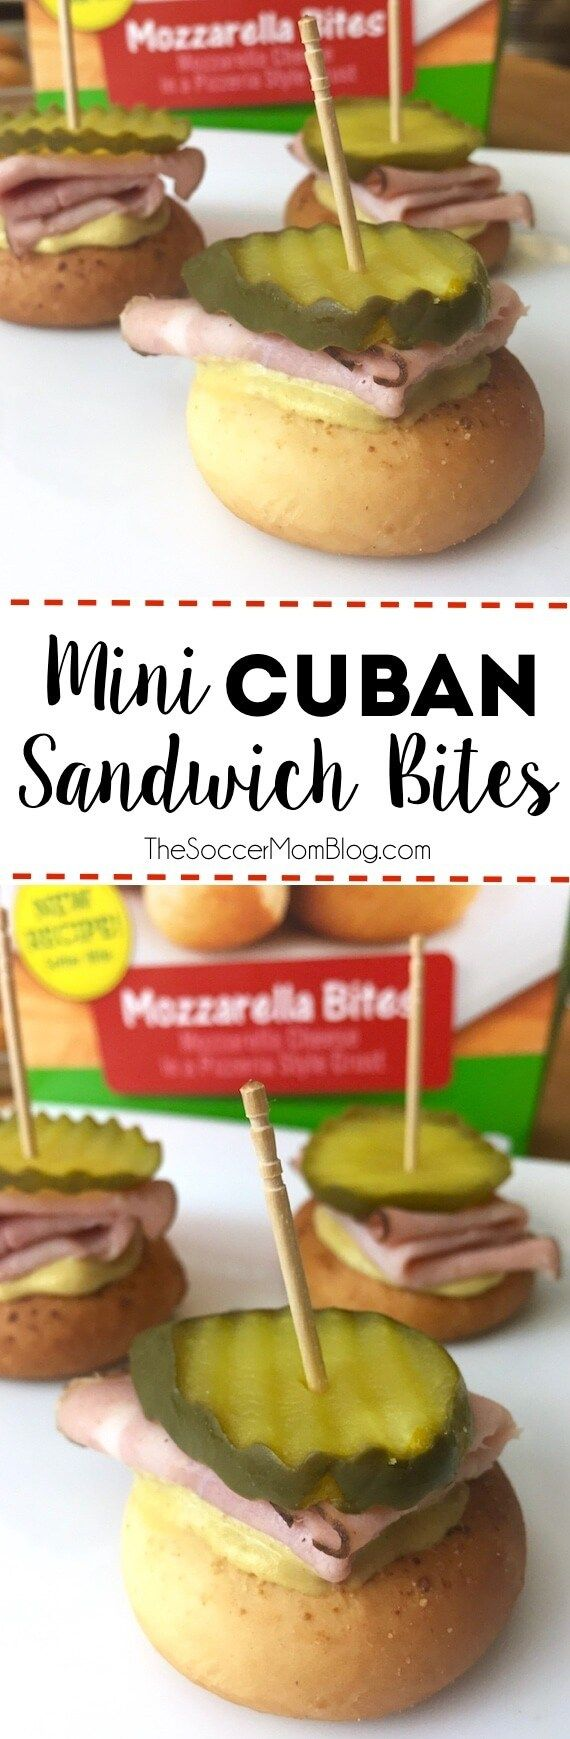 All the flavors of a Cuban sandwich in one tasty bite! Mini Cuban Sandwich Bites are the perfect game-day appetizer - easy to make & virtually mess-free! #MadSnackSkills (ad)